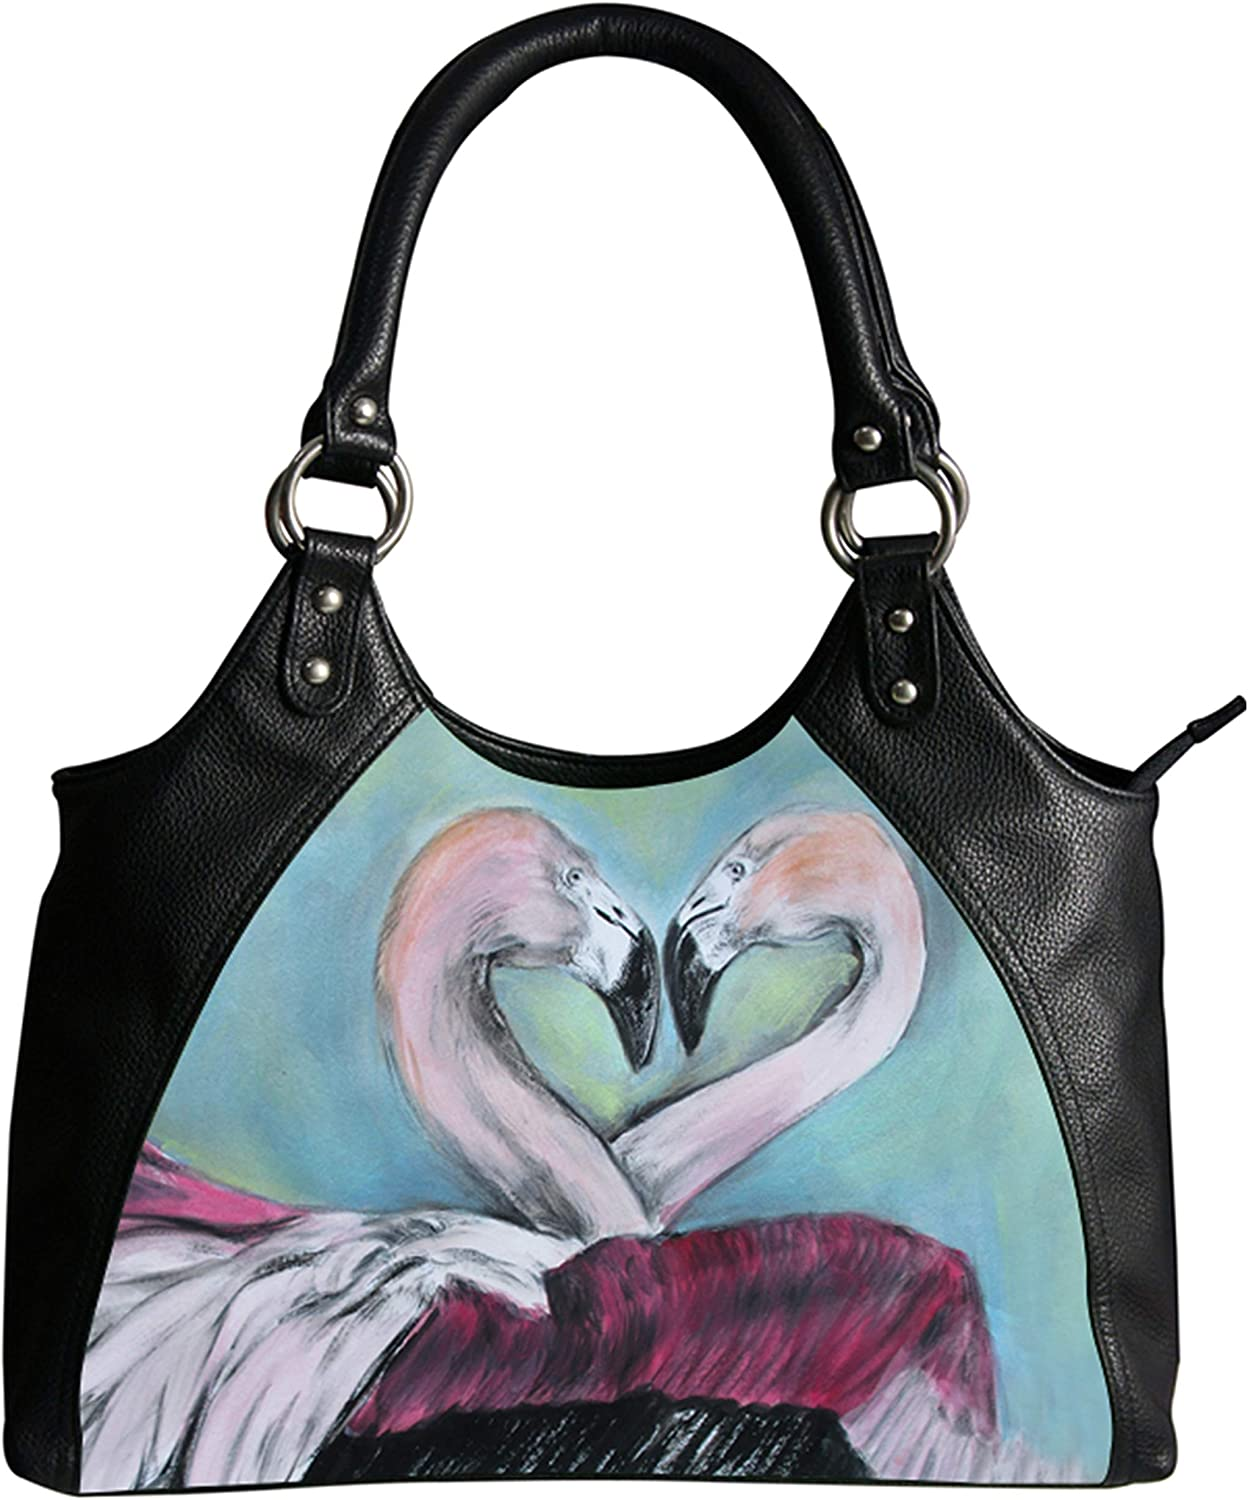 Vegan Leather Retro Style Shoulder Bag – Taken From My Original Oil Painting, Support Wildlife Conservation